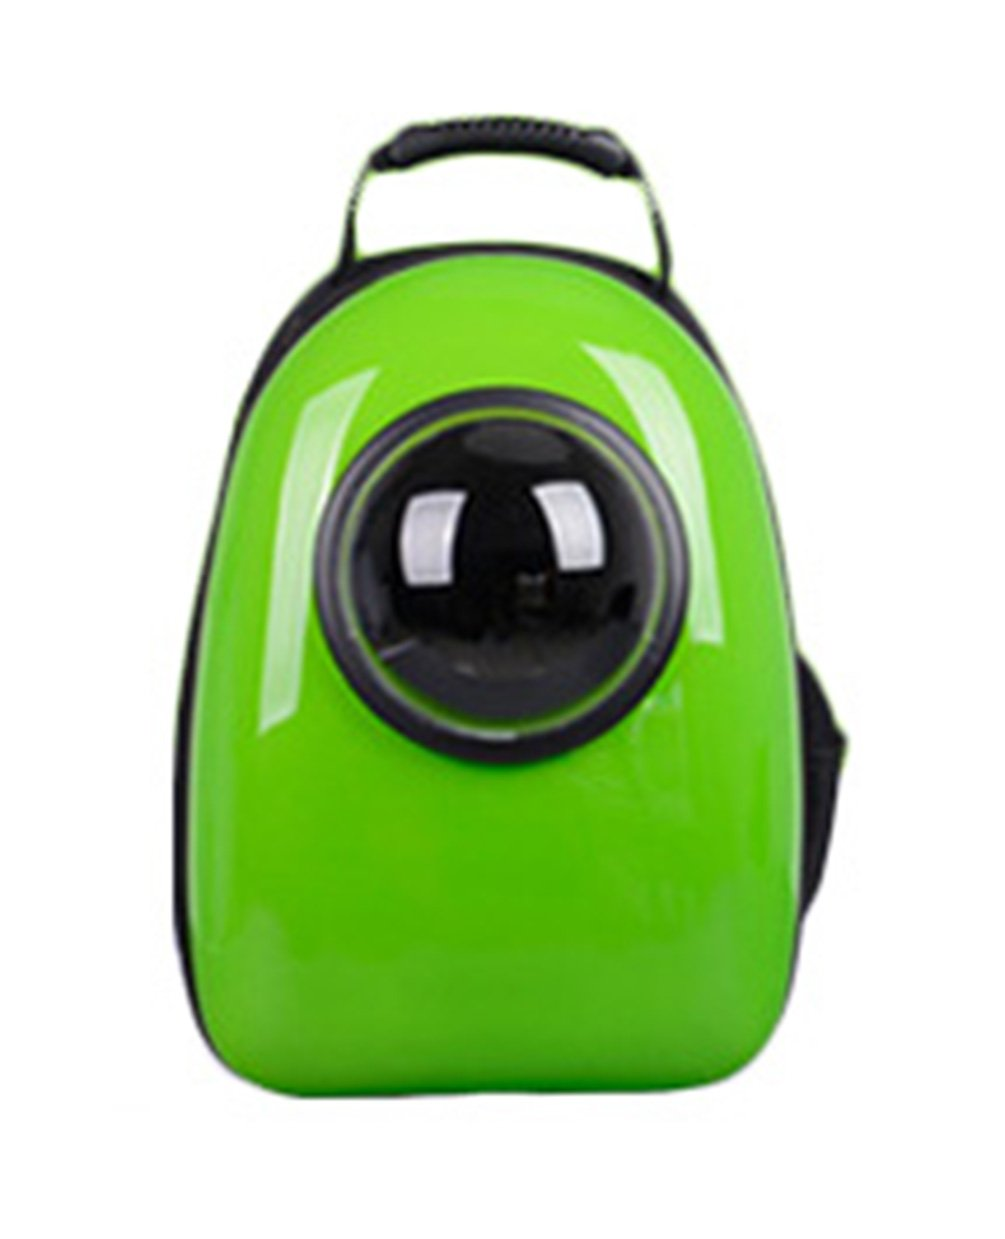 Freerun Innovative Bubble Backpack Pet Carriers for Cats and Dogs Outdoor Travel Pet Pack - Green